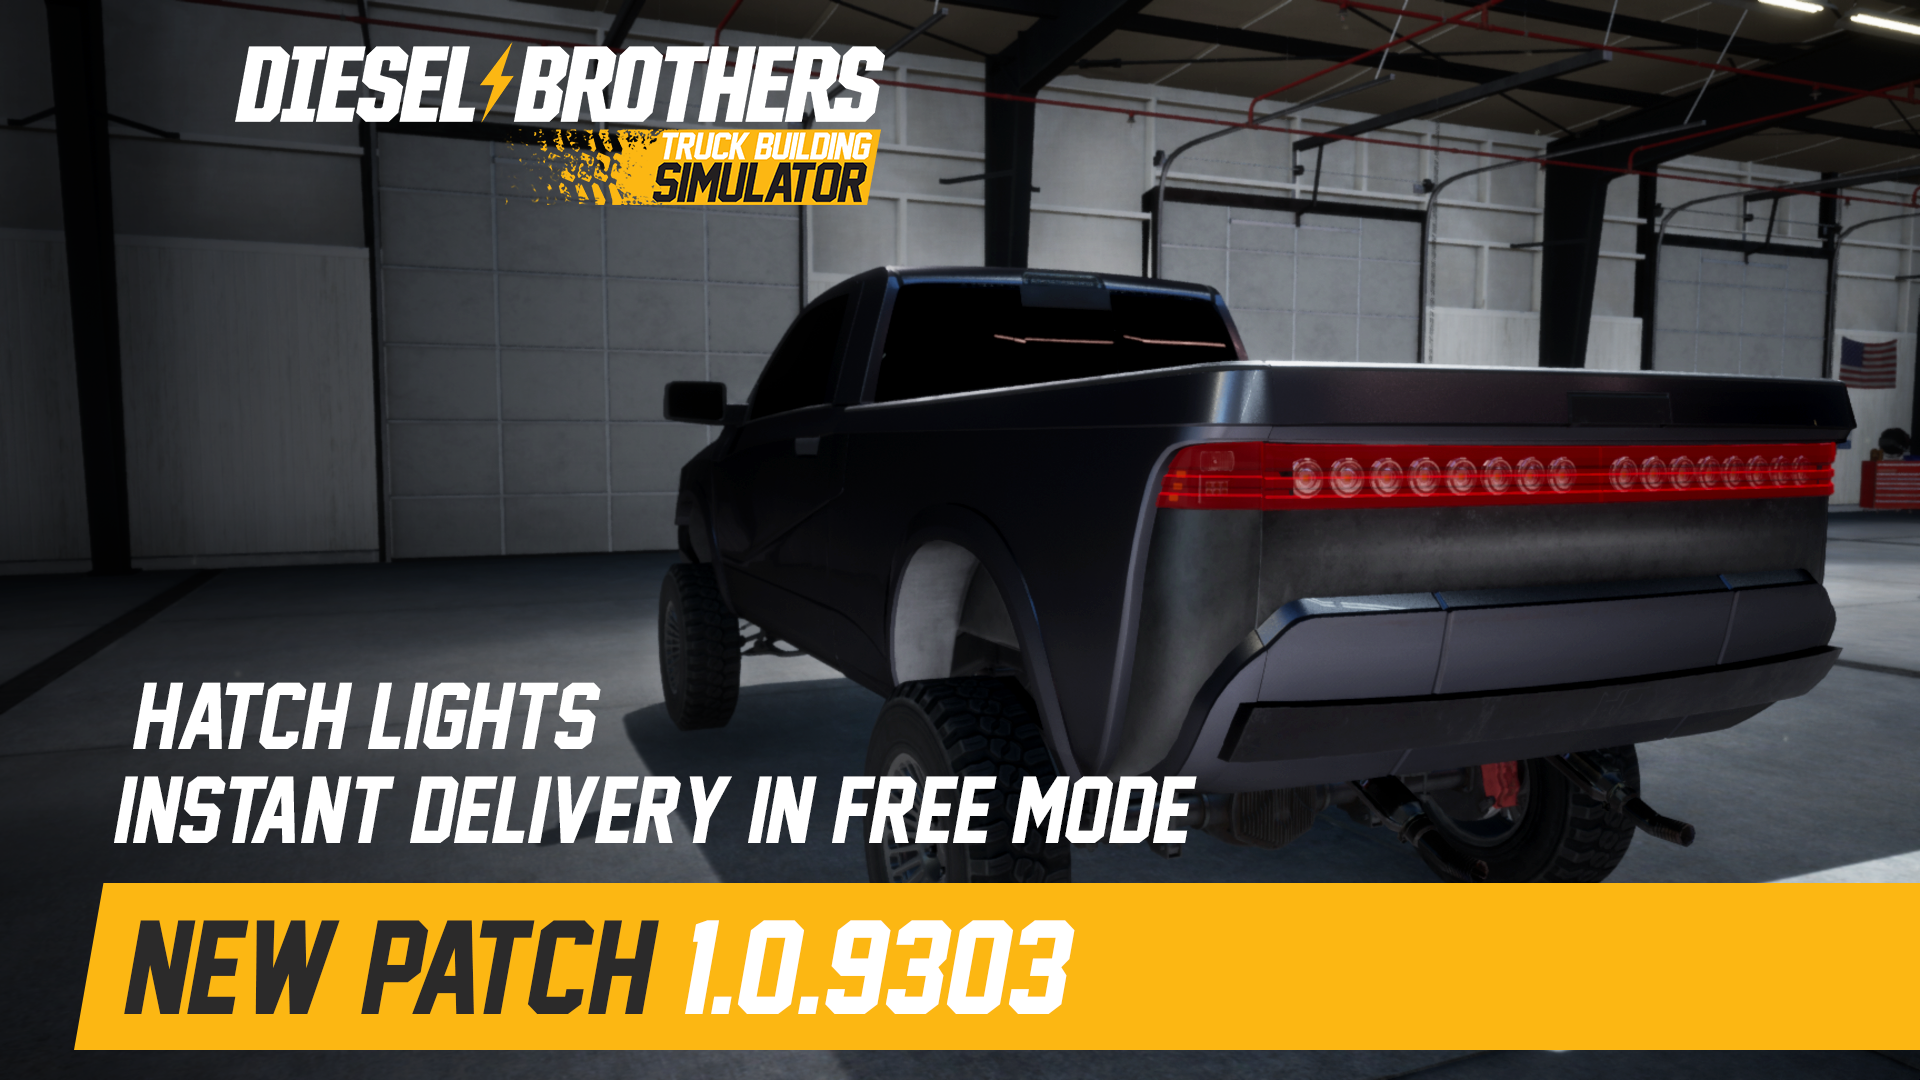 Diesel Brothers: Truck Building Simulator update for May 15, 2019